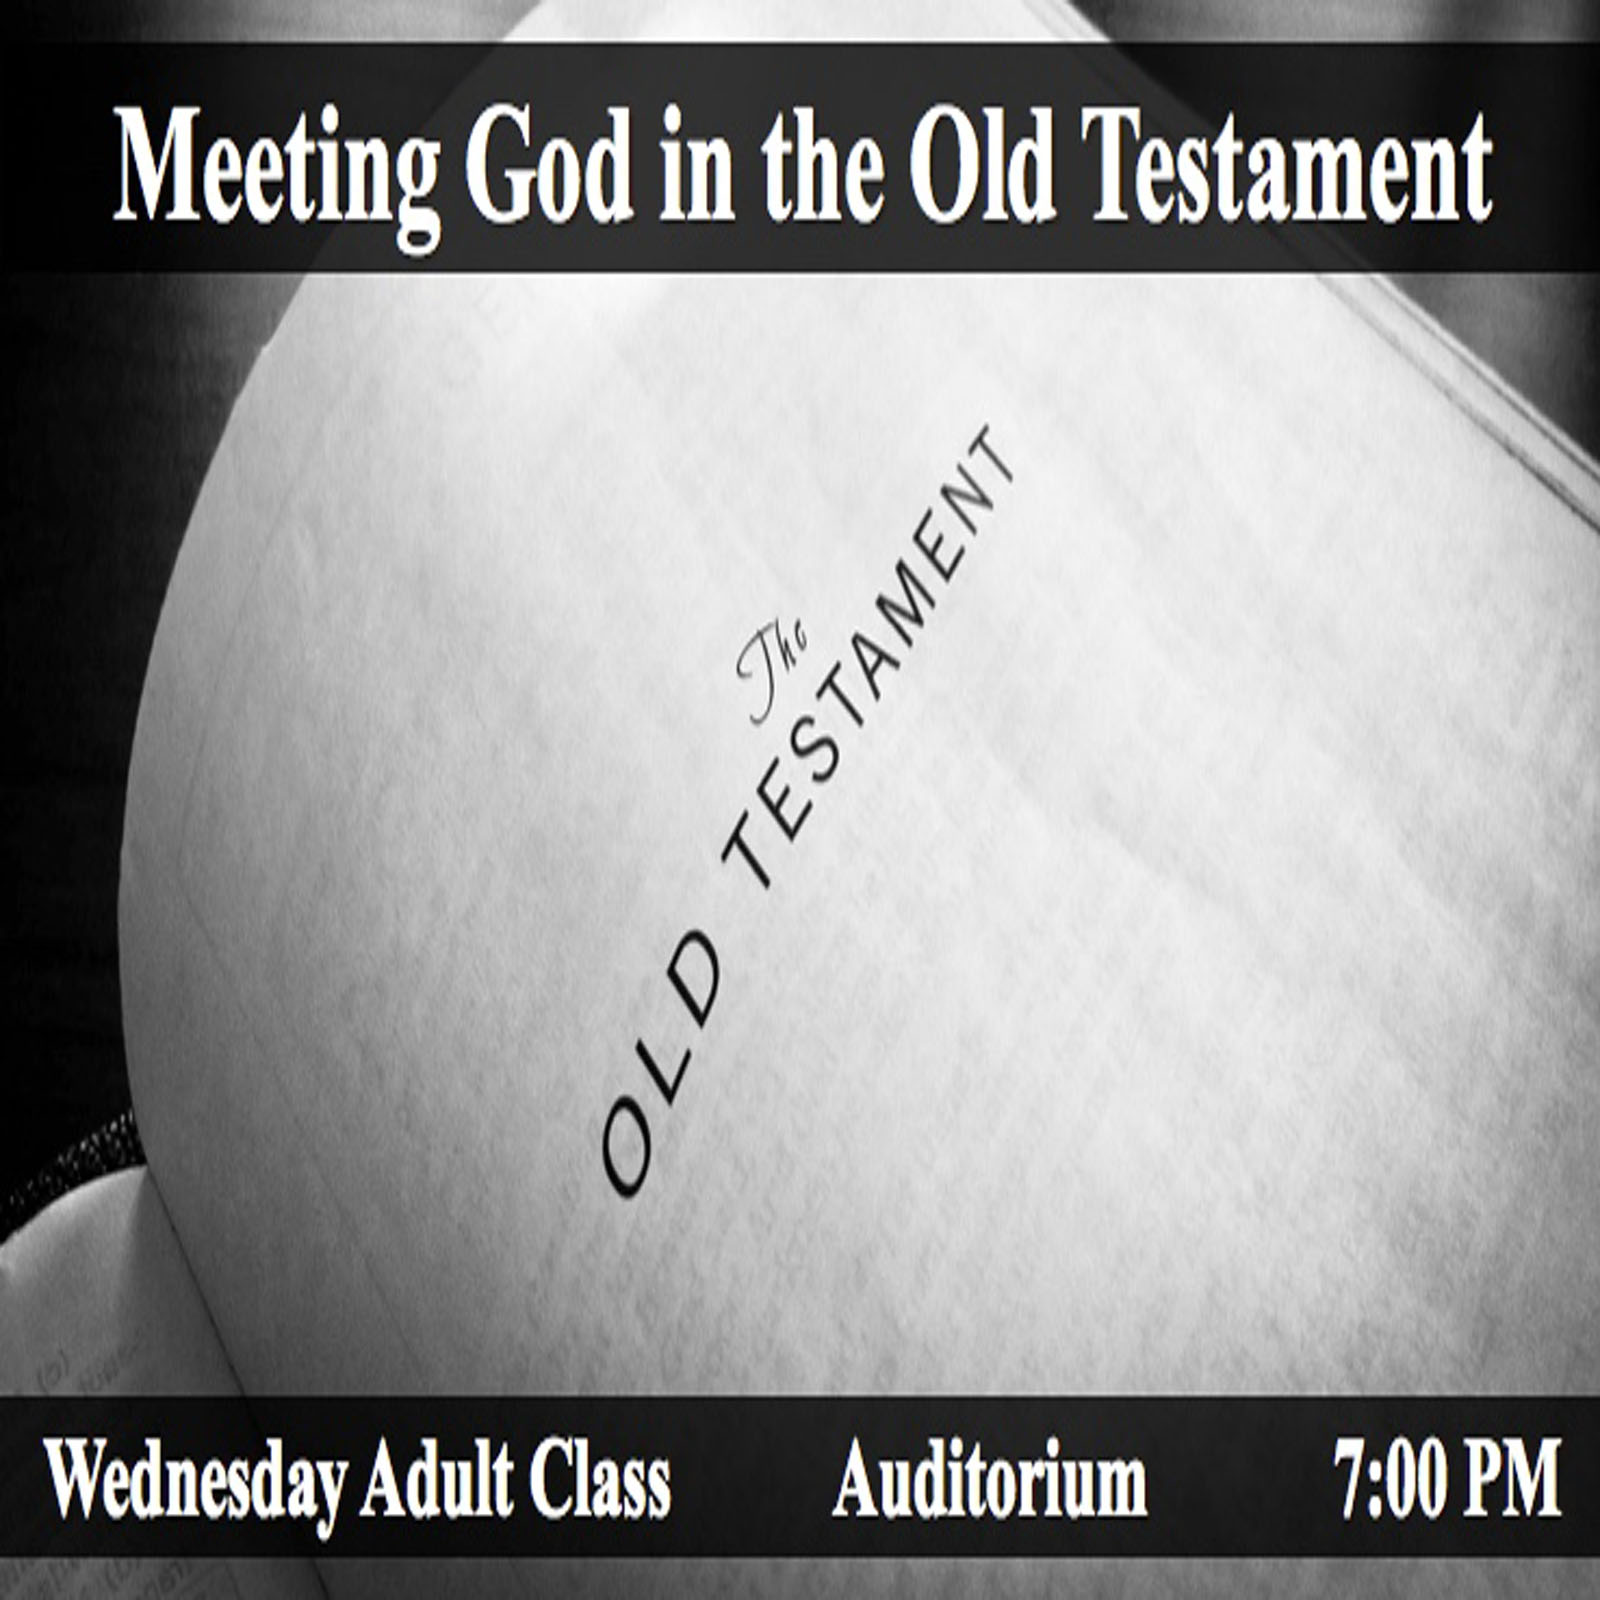 an analysis of the vindictive god in the old testament Old testament adult bible ing god are so firmly ensconced and the flickering lamp of god's people is at the point it's seemingly vindictive rheto.